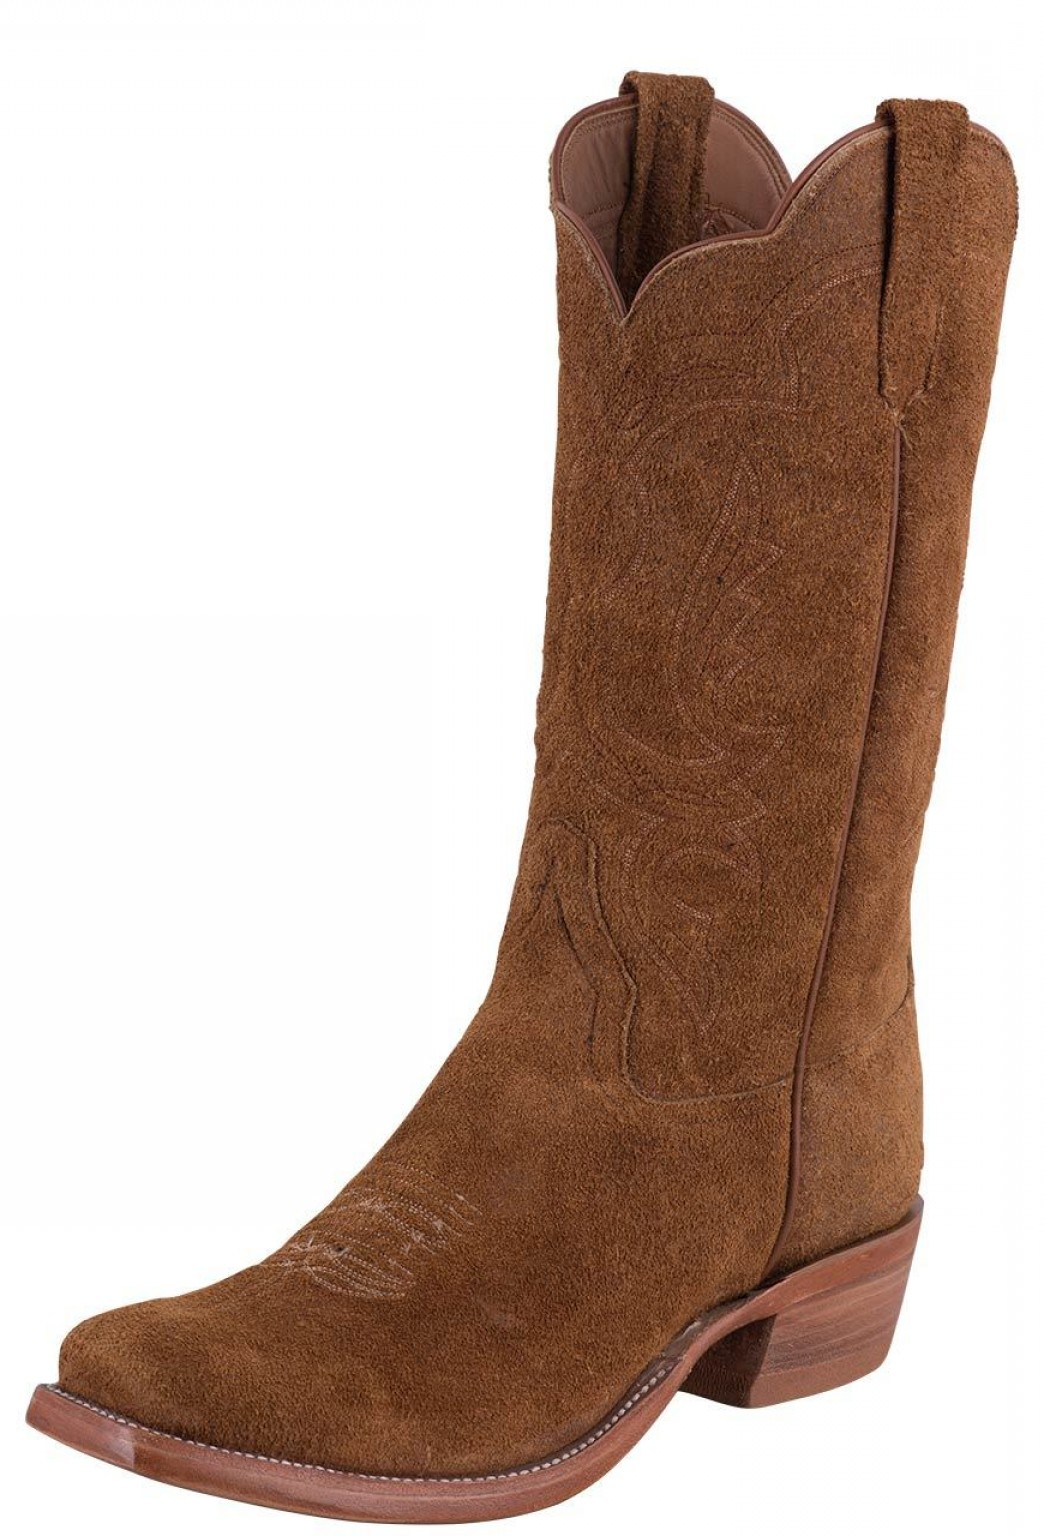 Two Cowgirl Boots Vector: Rios Of Mercedes Rust Crazyhorse Rough Out Cowboy Boots